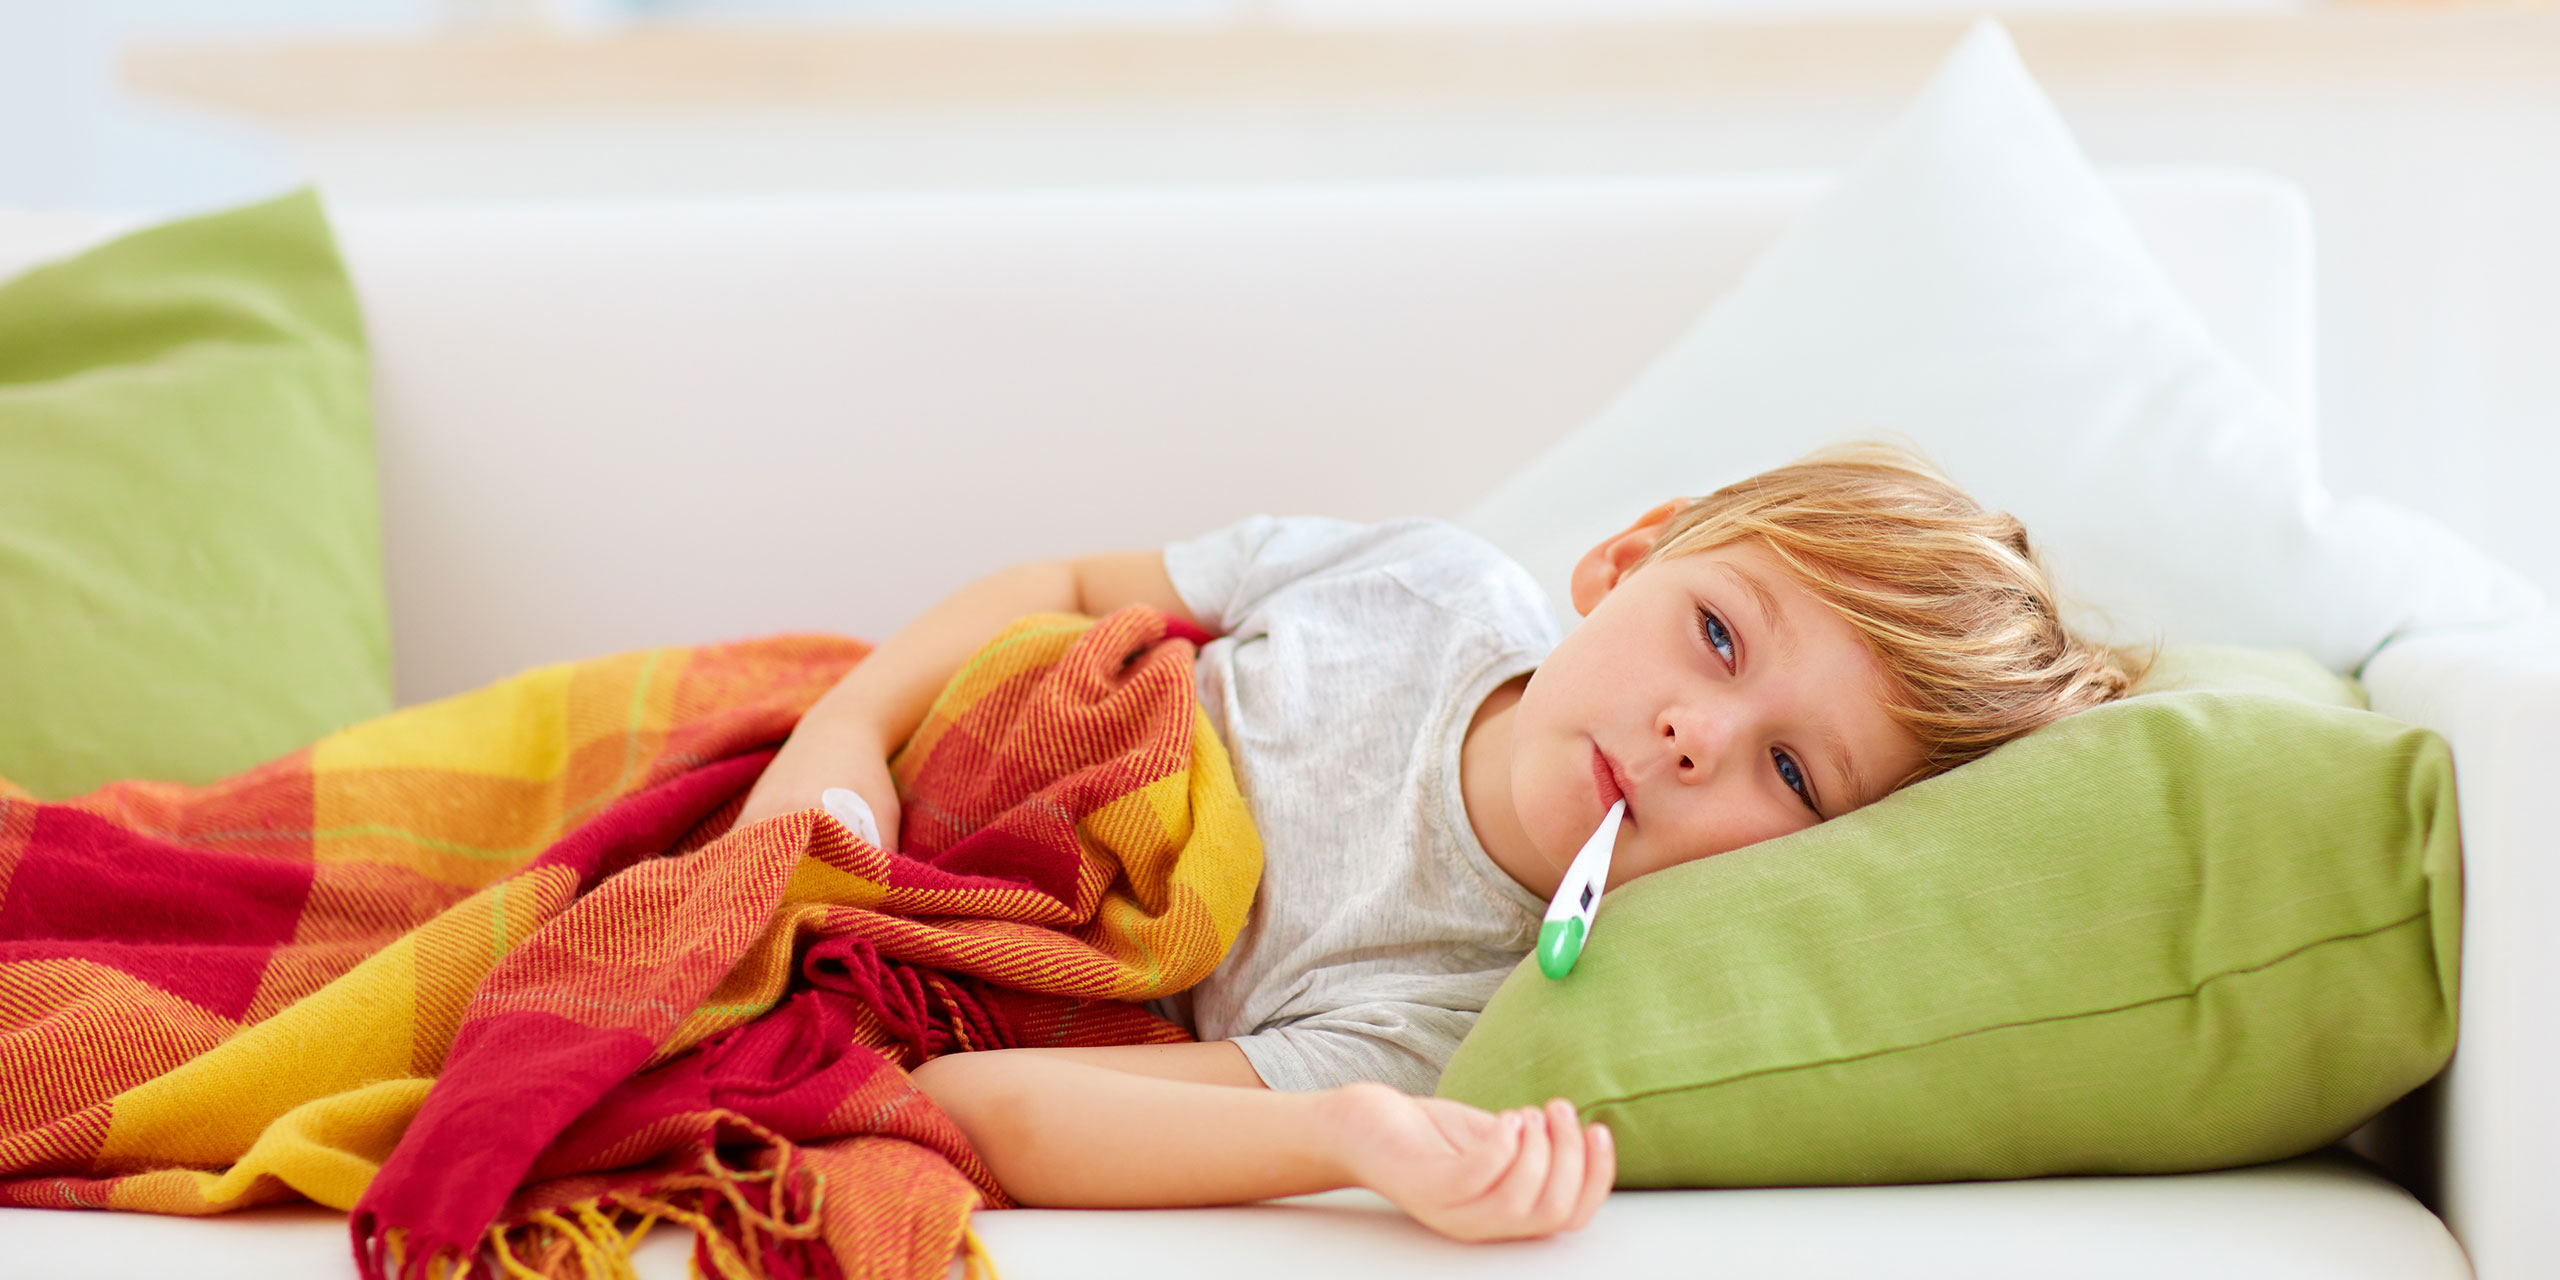 Sick Child on Sofa; Courtesy of Olesia Bilke/Shutterstock.com